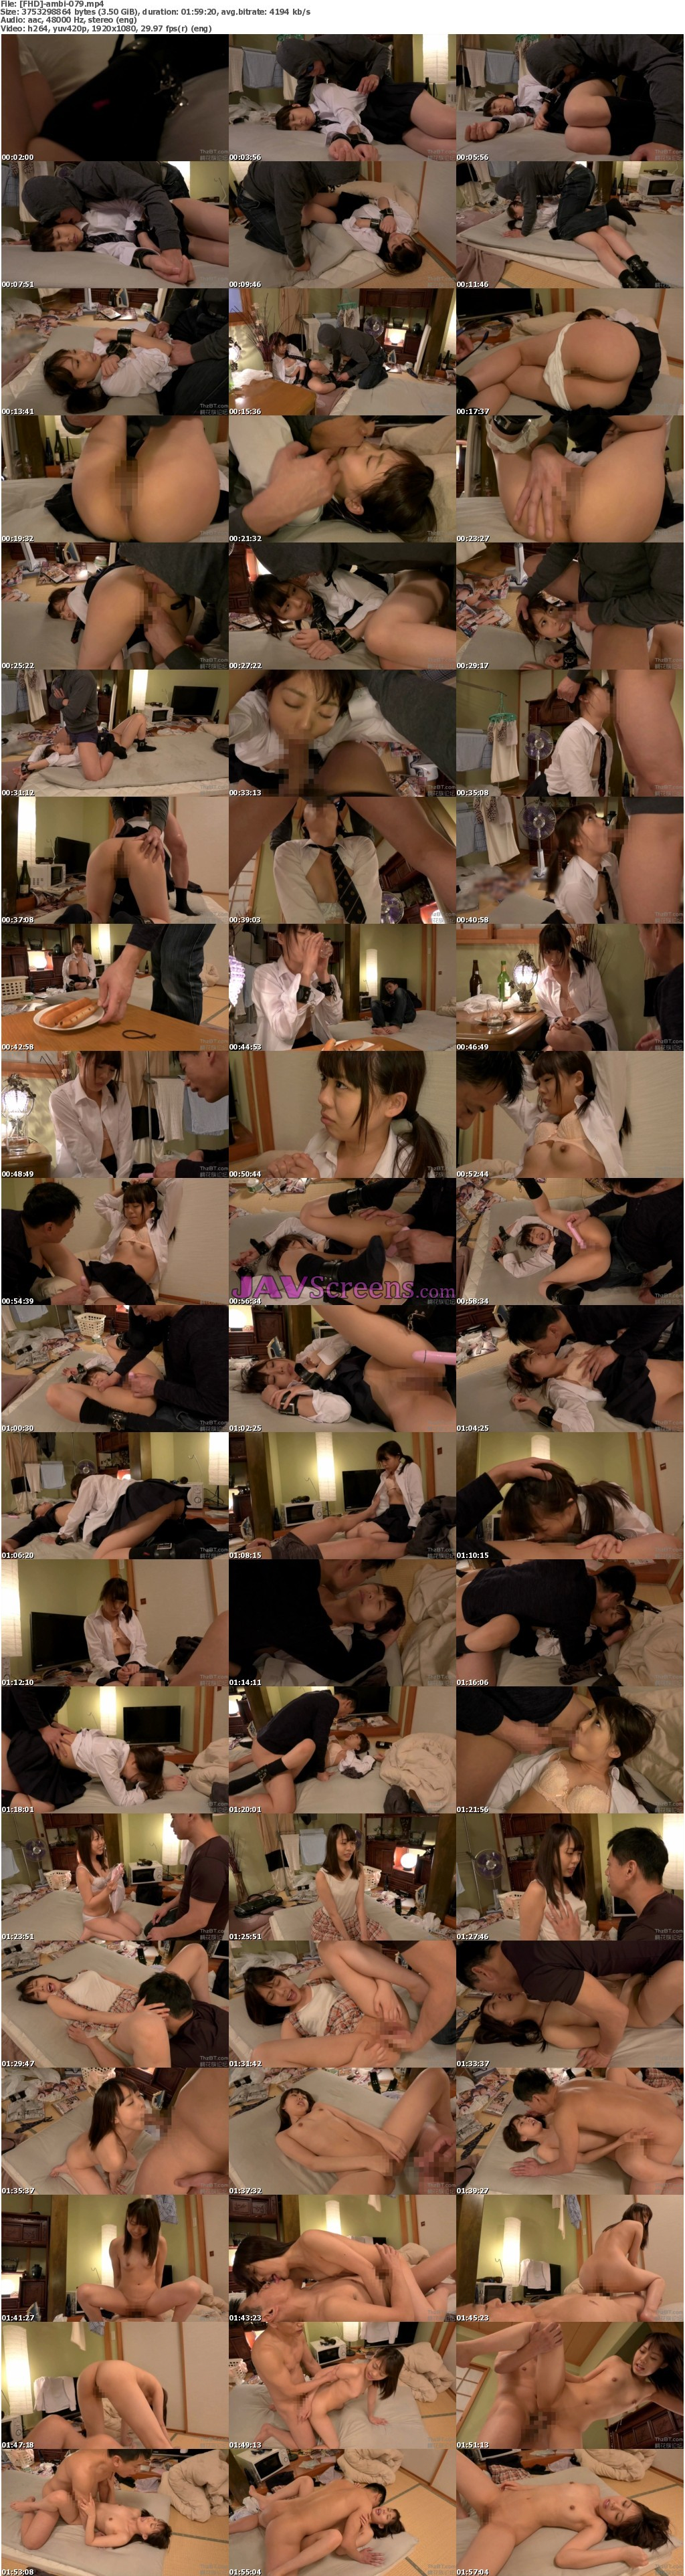 AMBI-079.jpg - JAV Screenshot